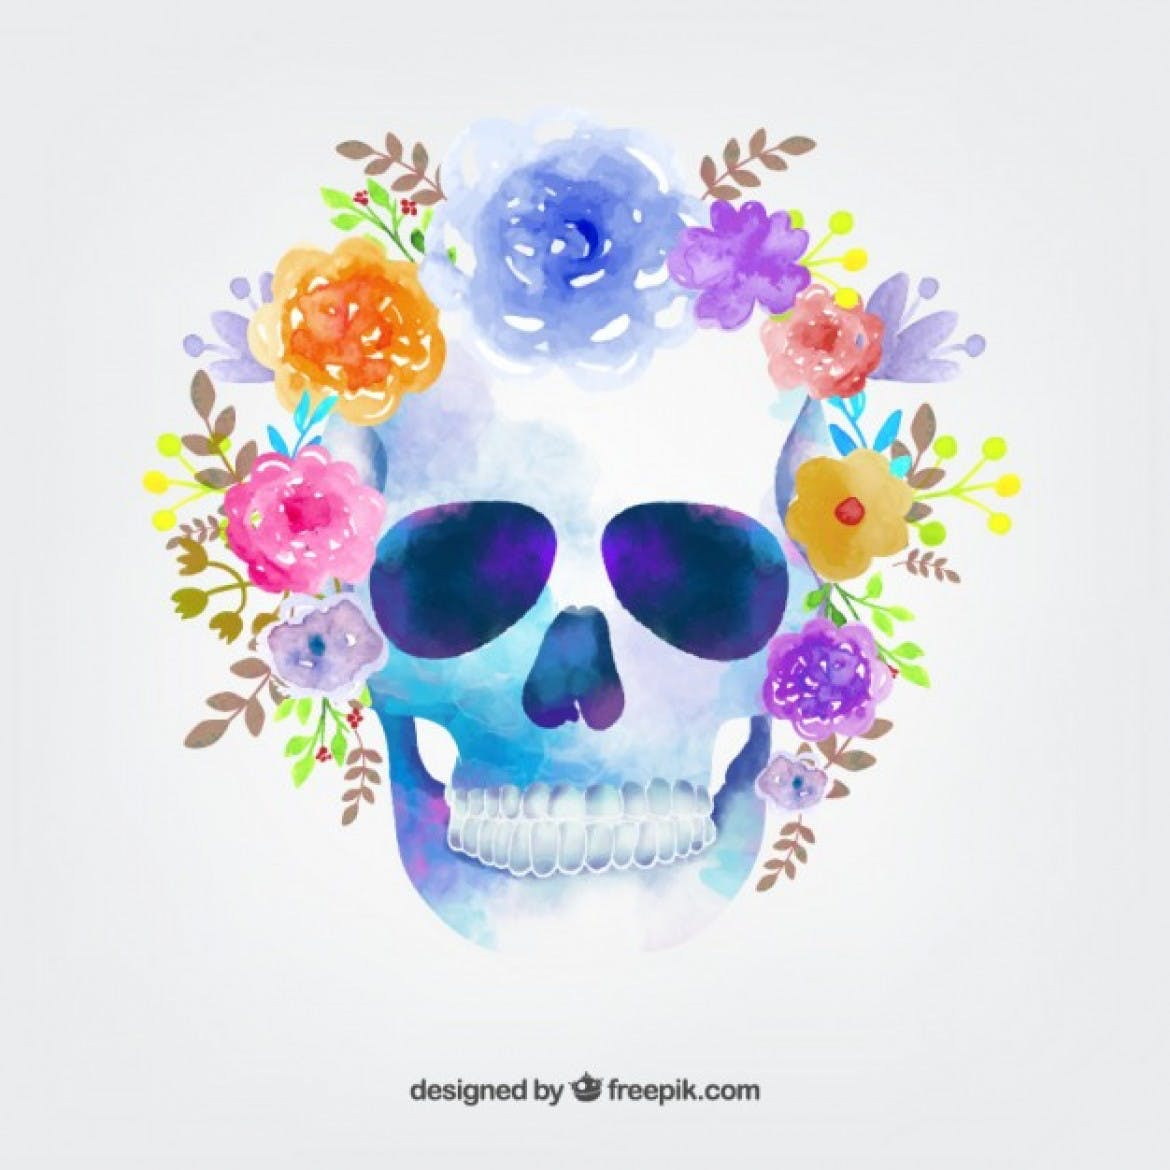 wpid-watercolor-skull-with-flowers_23-2147508268-1170x1170